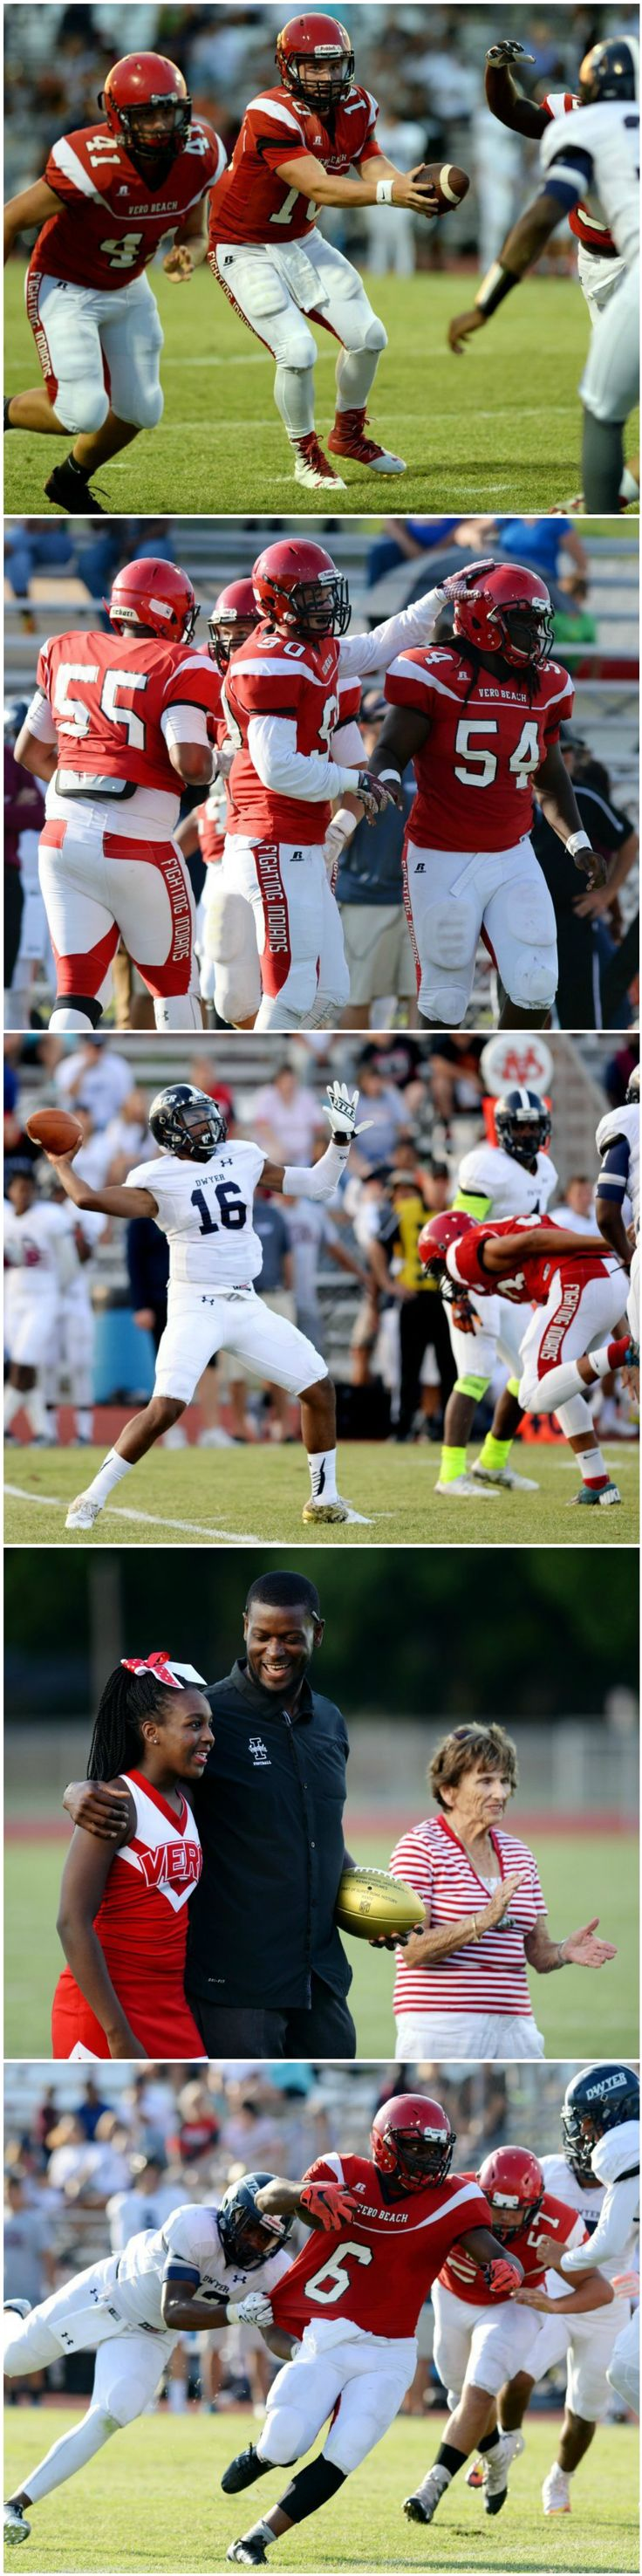 Images from the high school football game Tuesday, May 24, 2016 between Vero Beach and W.T. Dwyer at Billy Livings Field at the Citrus Bowl in Vero Beach.